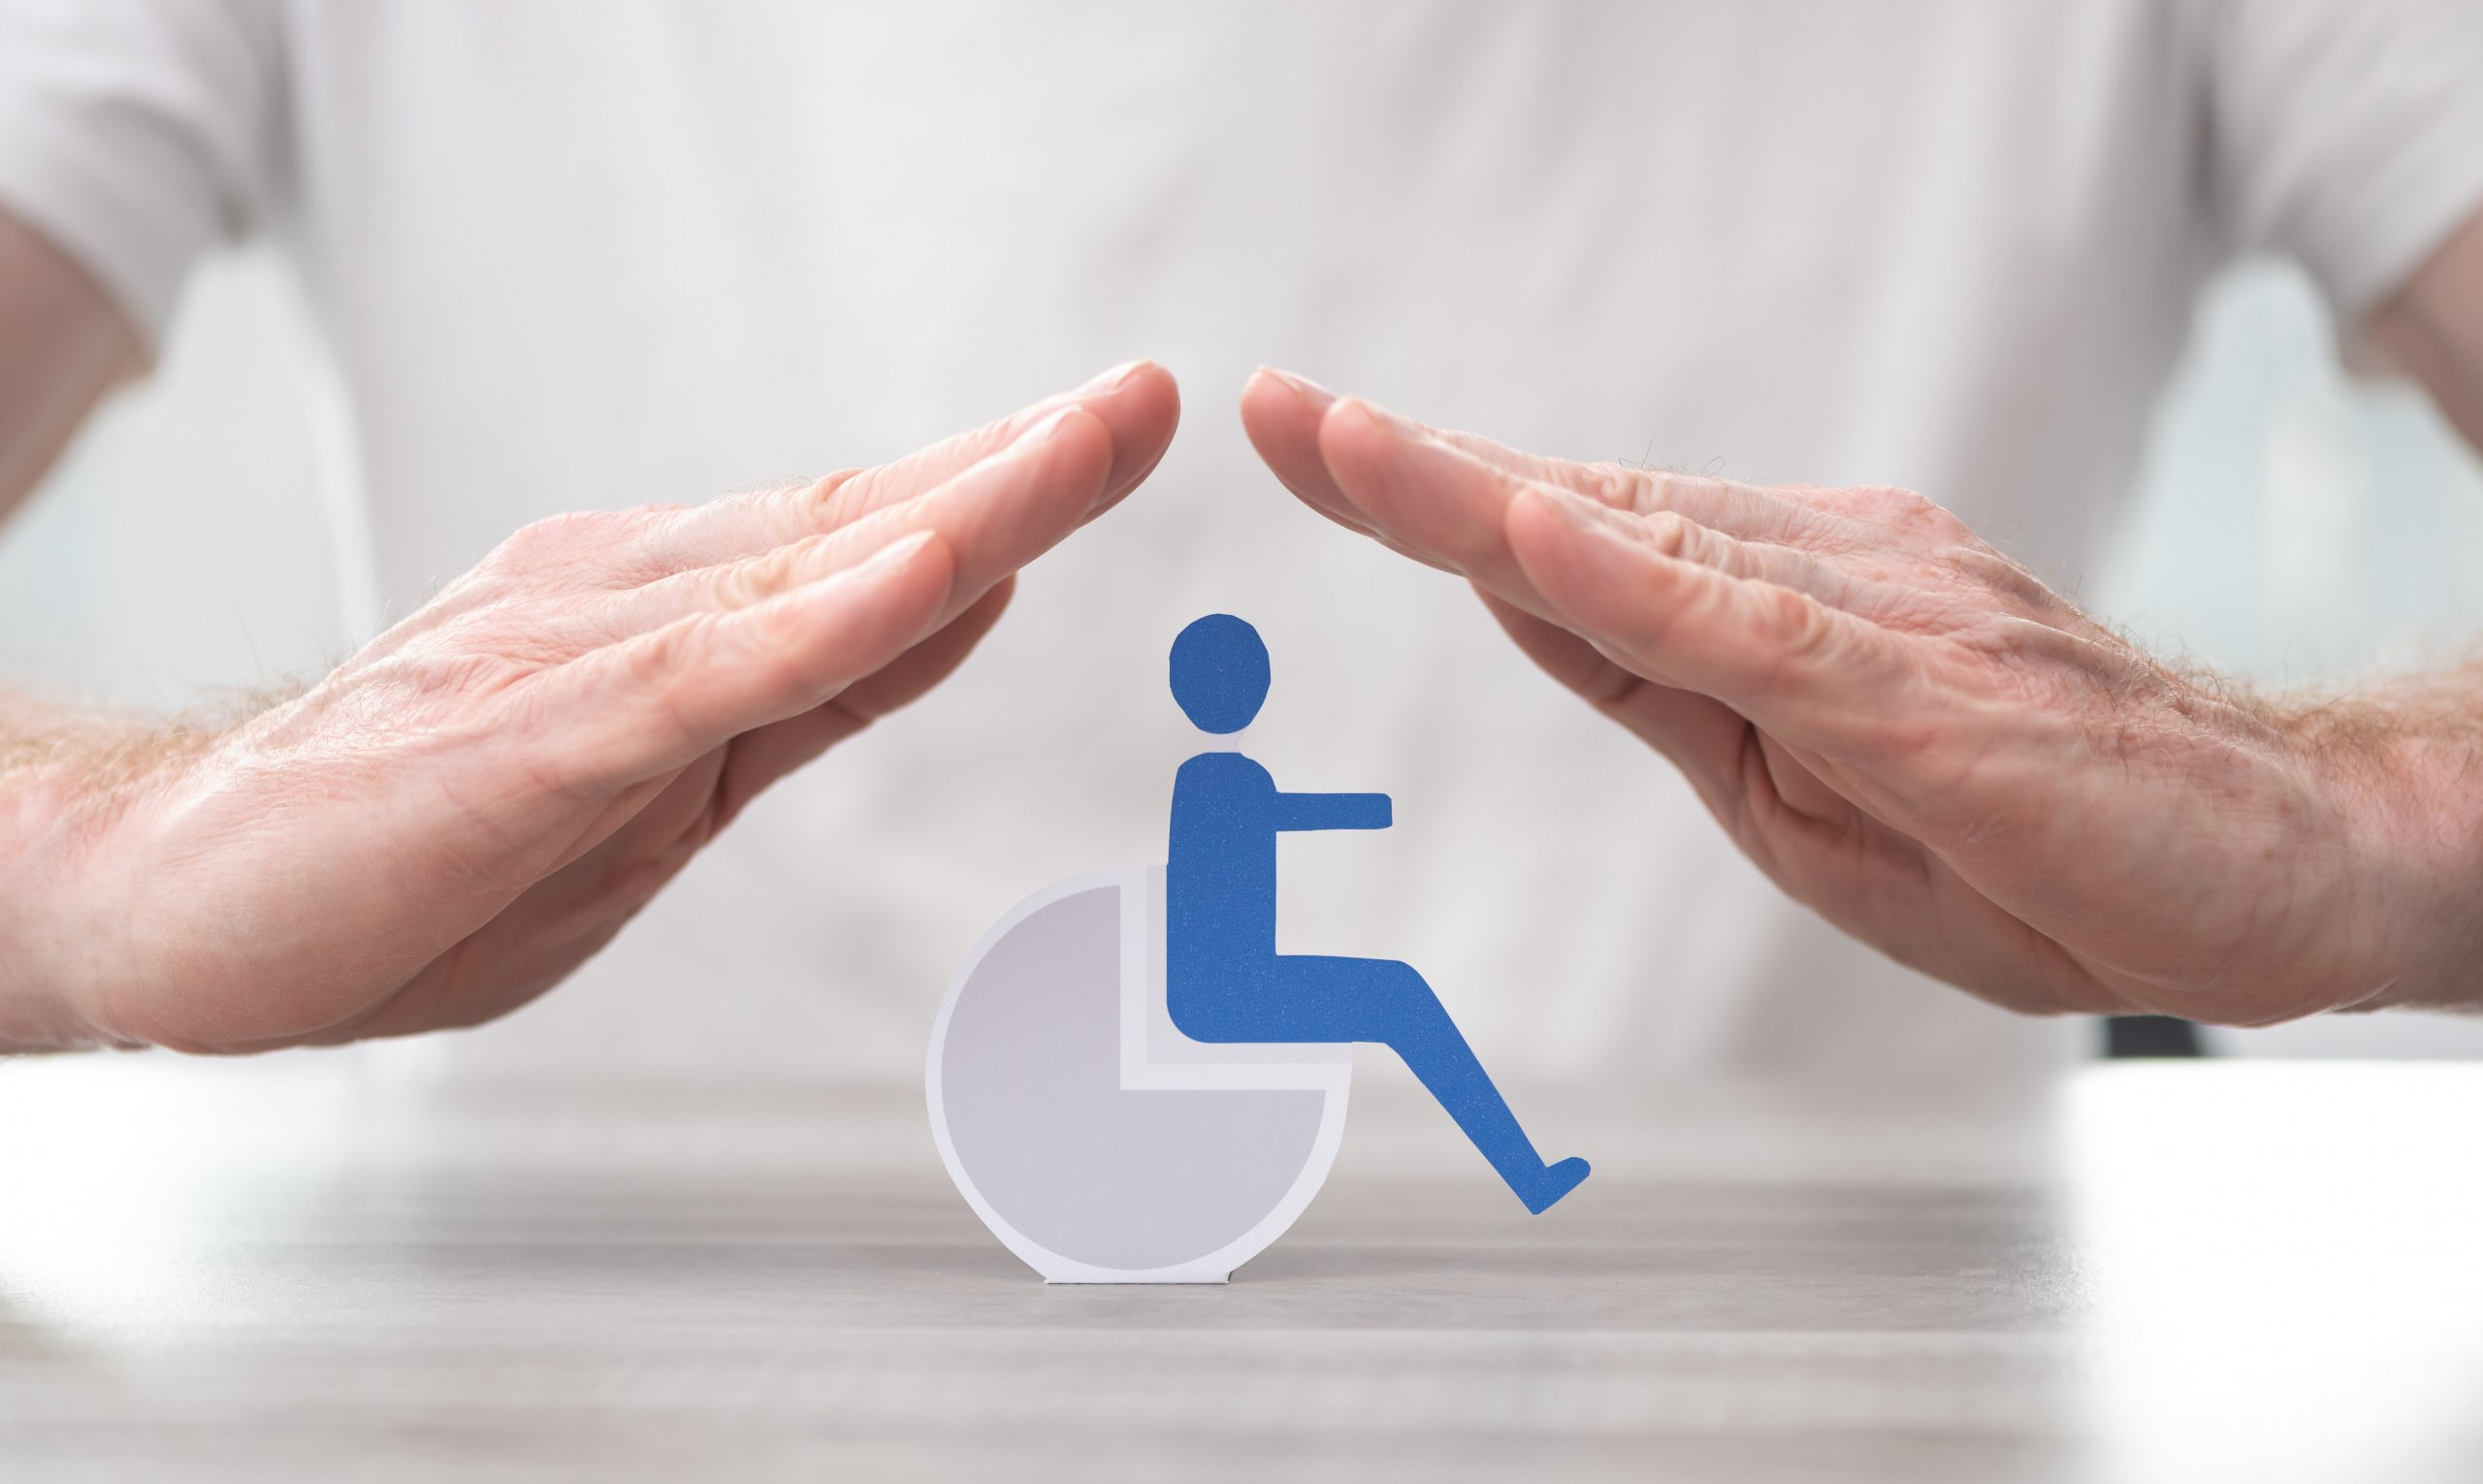 Let's do it differently for the differently-abled